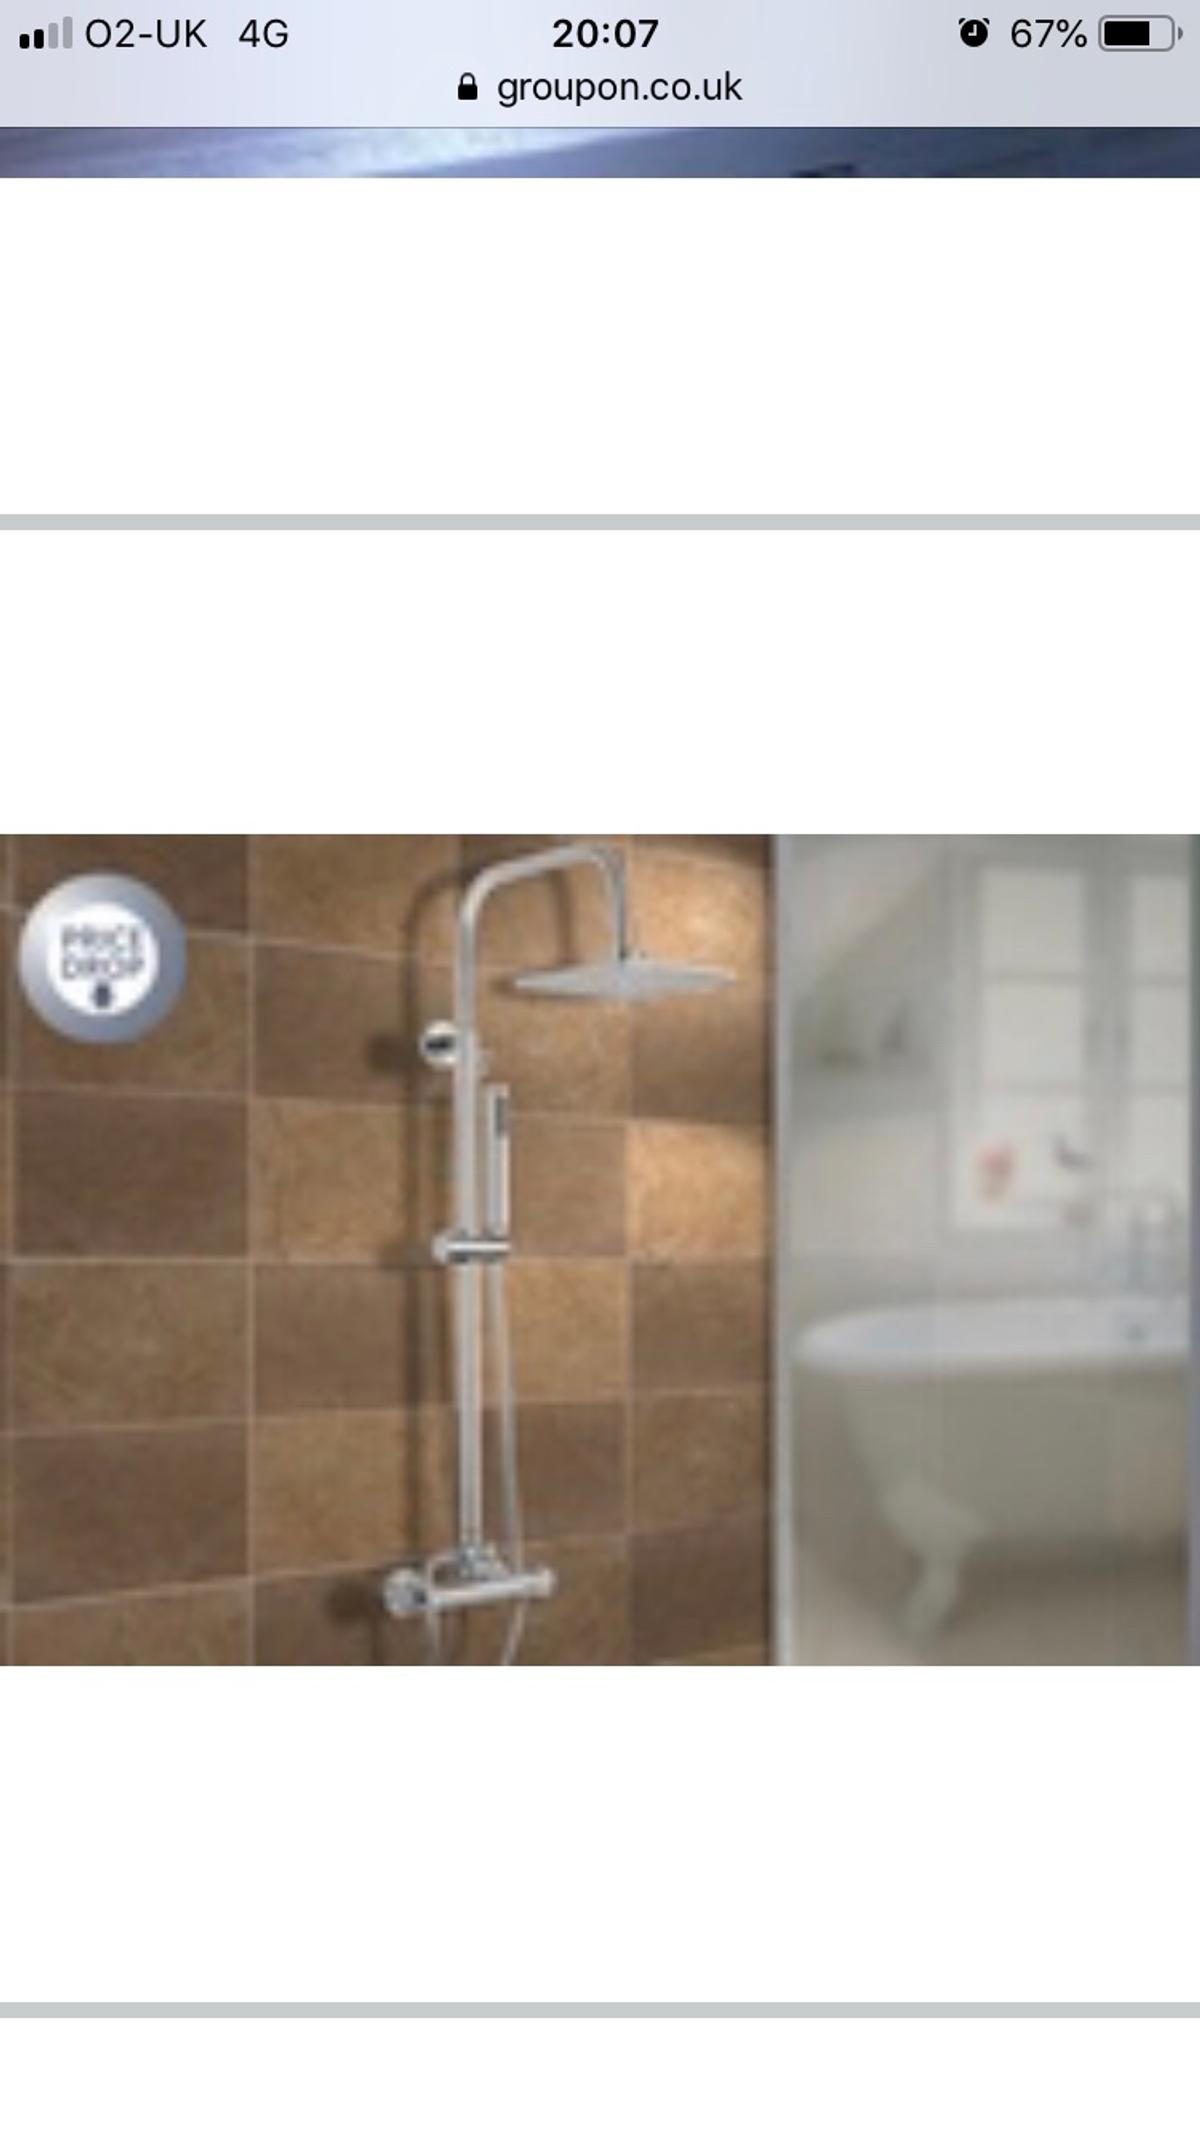 Thermostatic Mixer Shower With Square Head